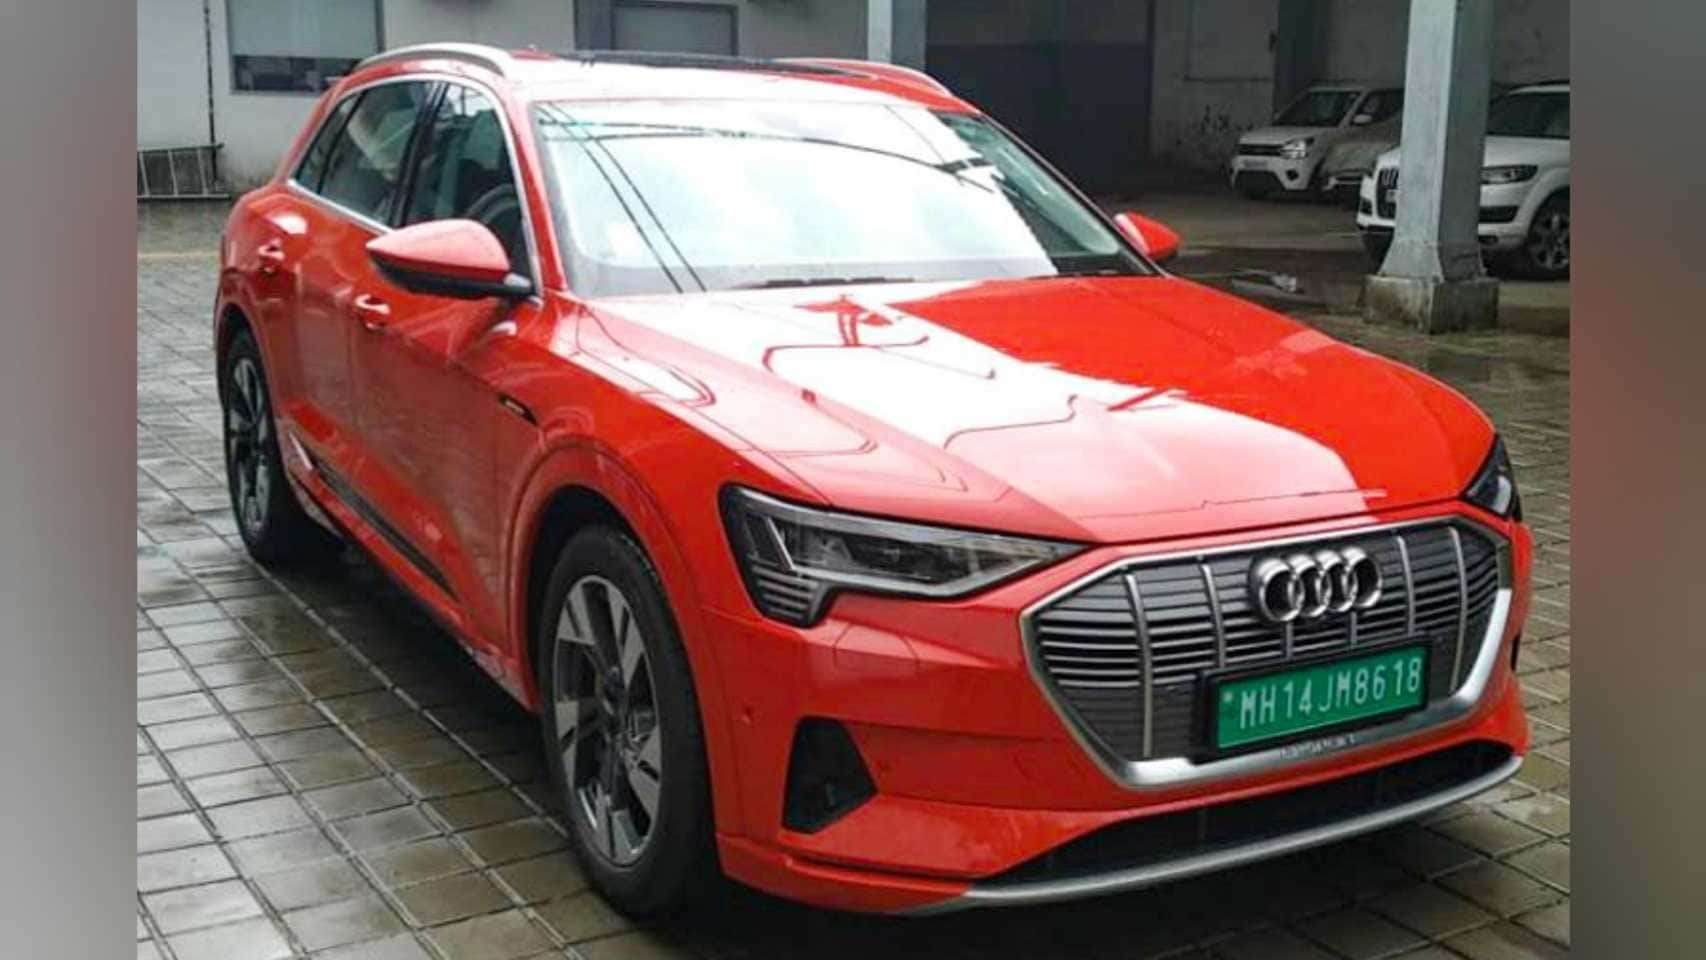 The Audi e-tron is expected to have a range of over 400 kilometres on a full charge. Image: Audi India